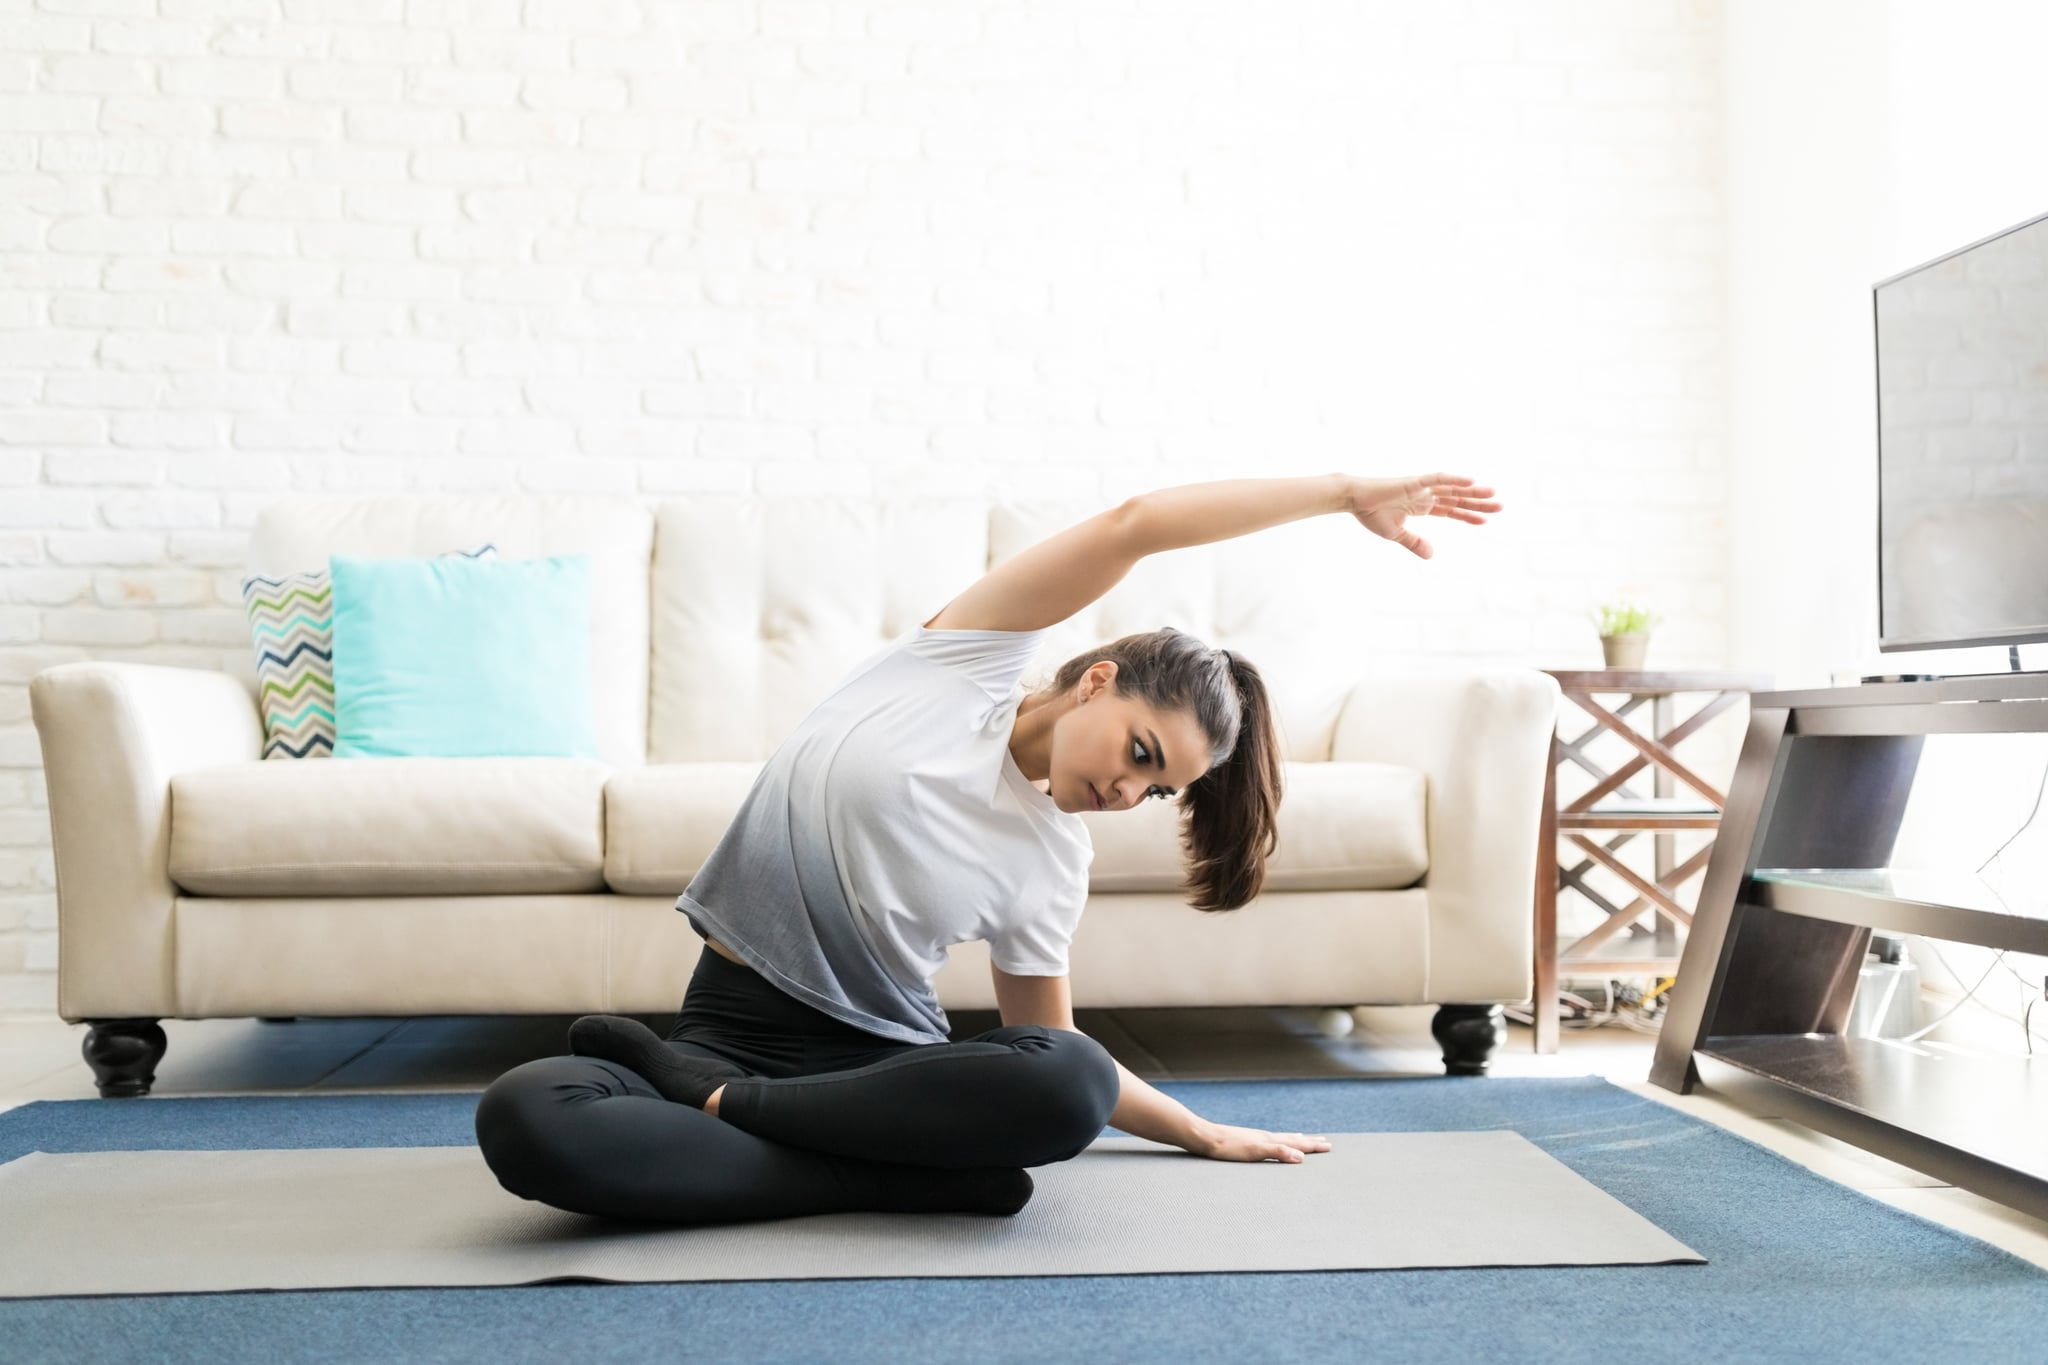 Stretches to combat sitting